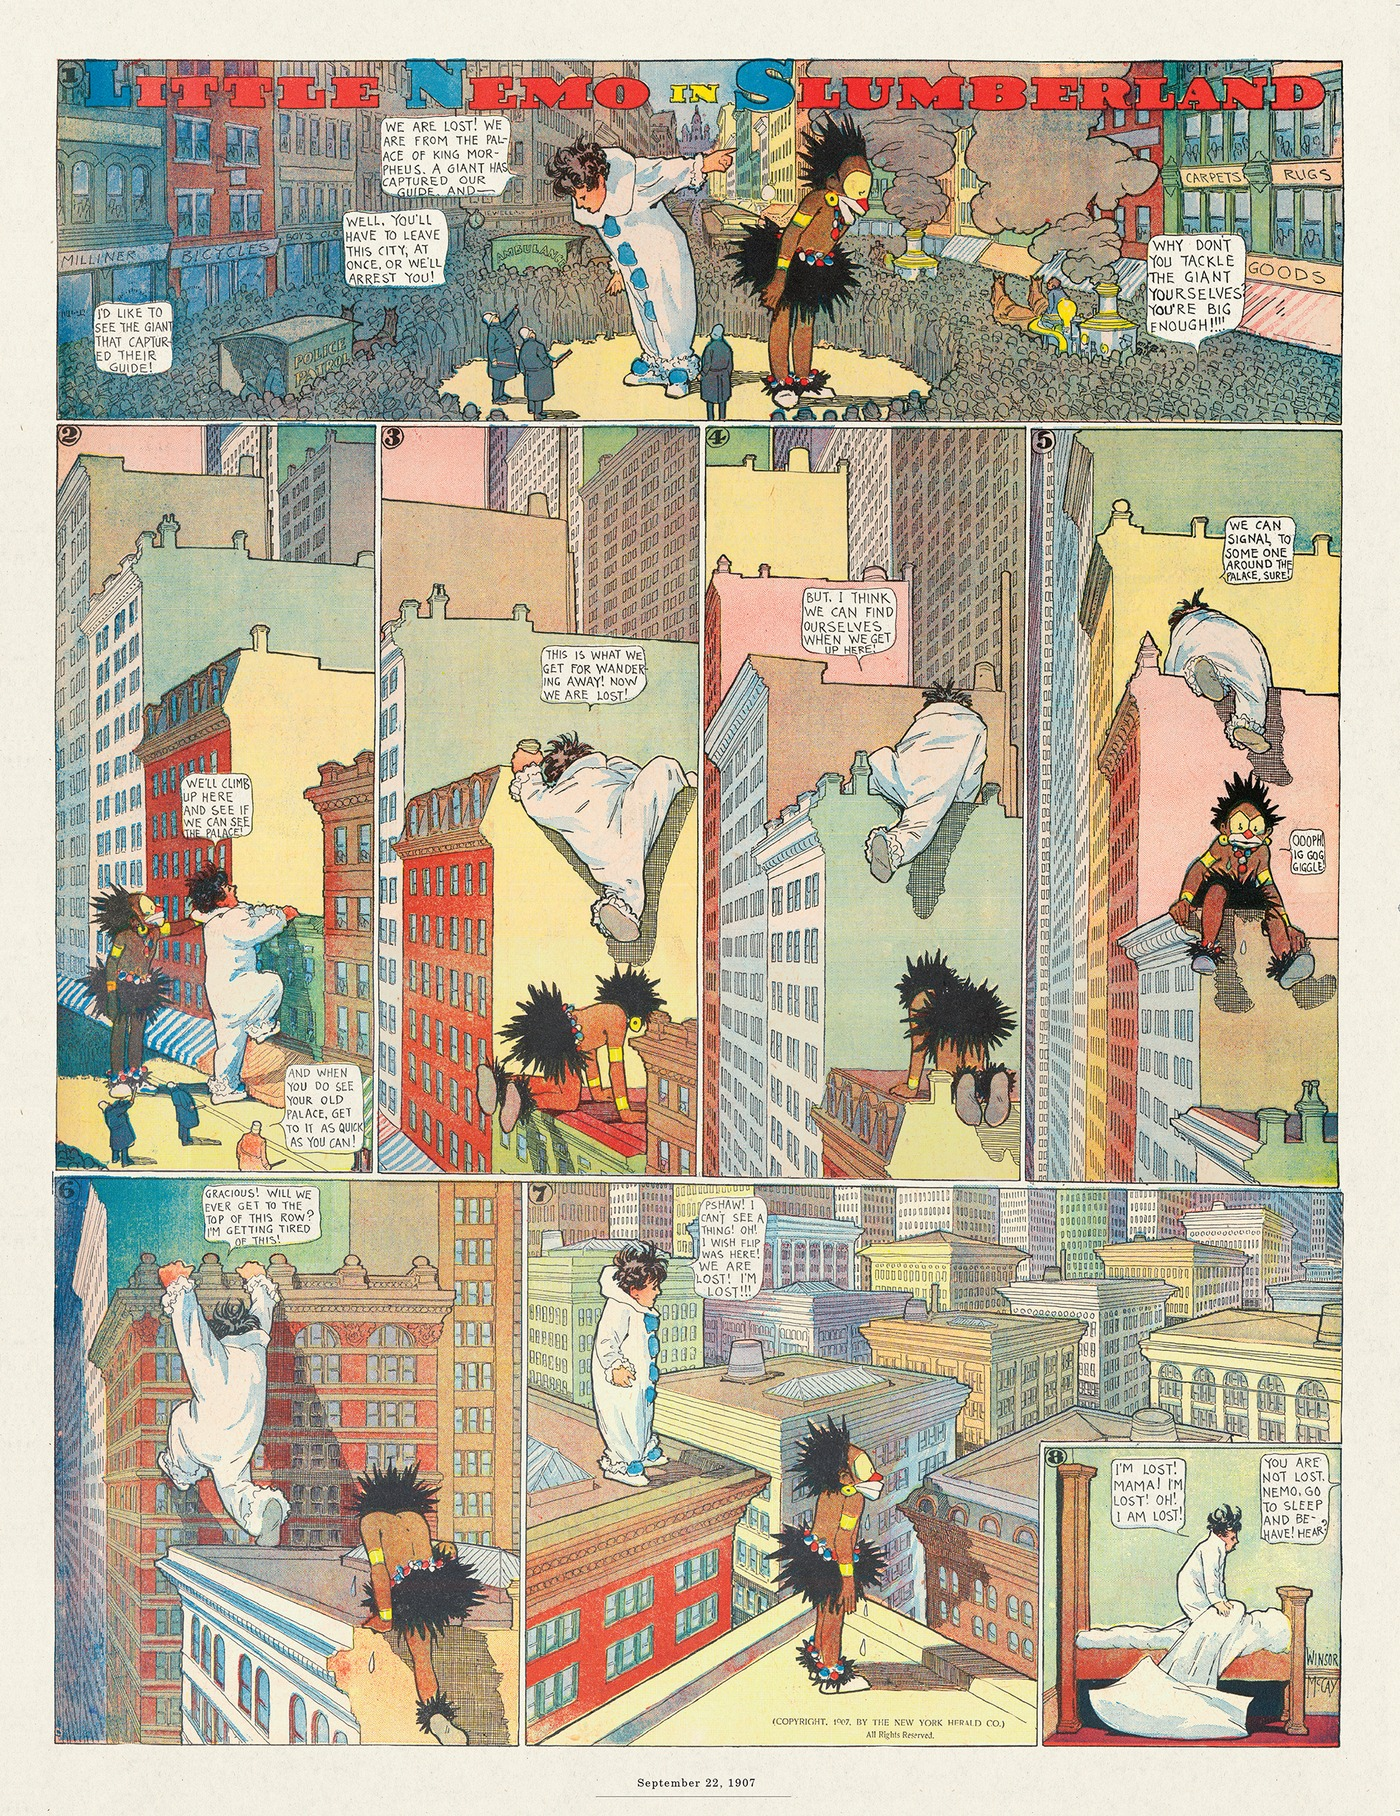 Little Nemo by Winsor McCay on Thu, 30 Jul 2020